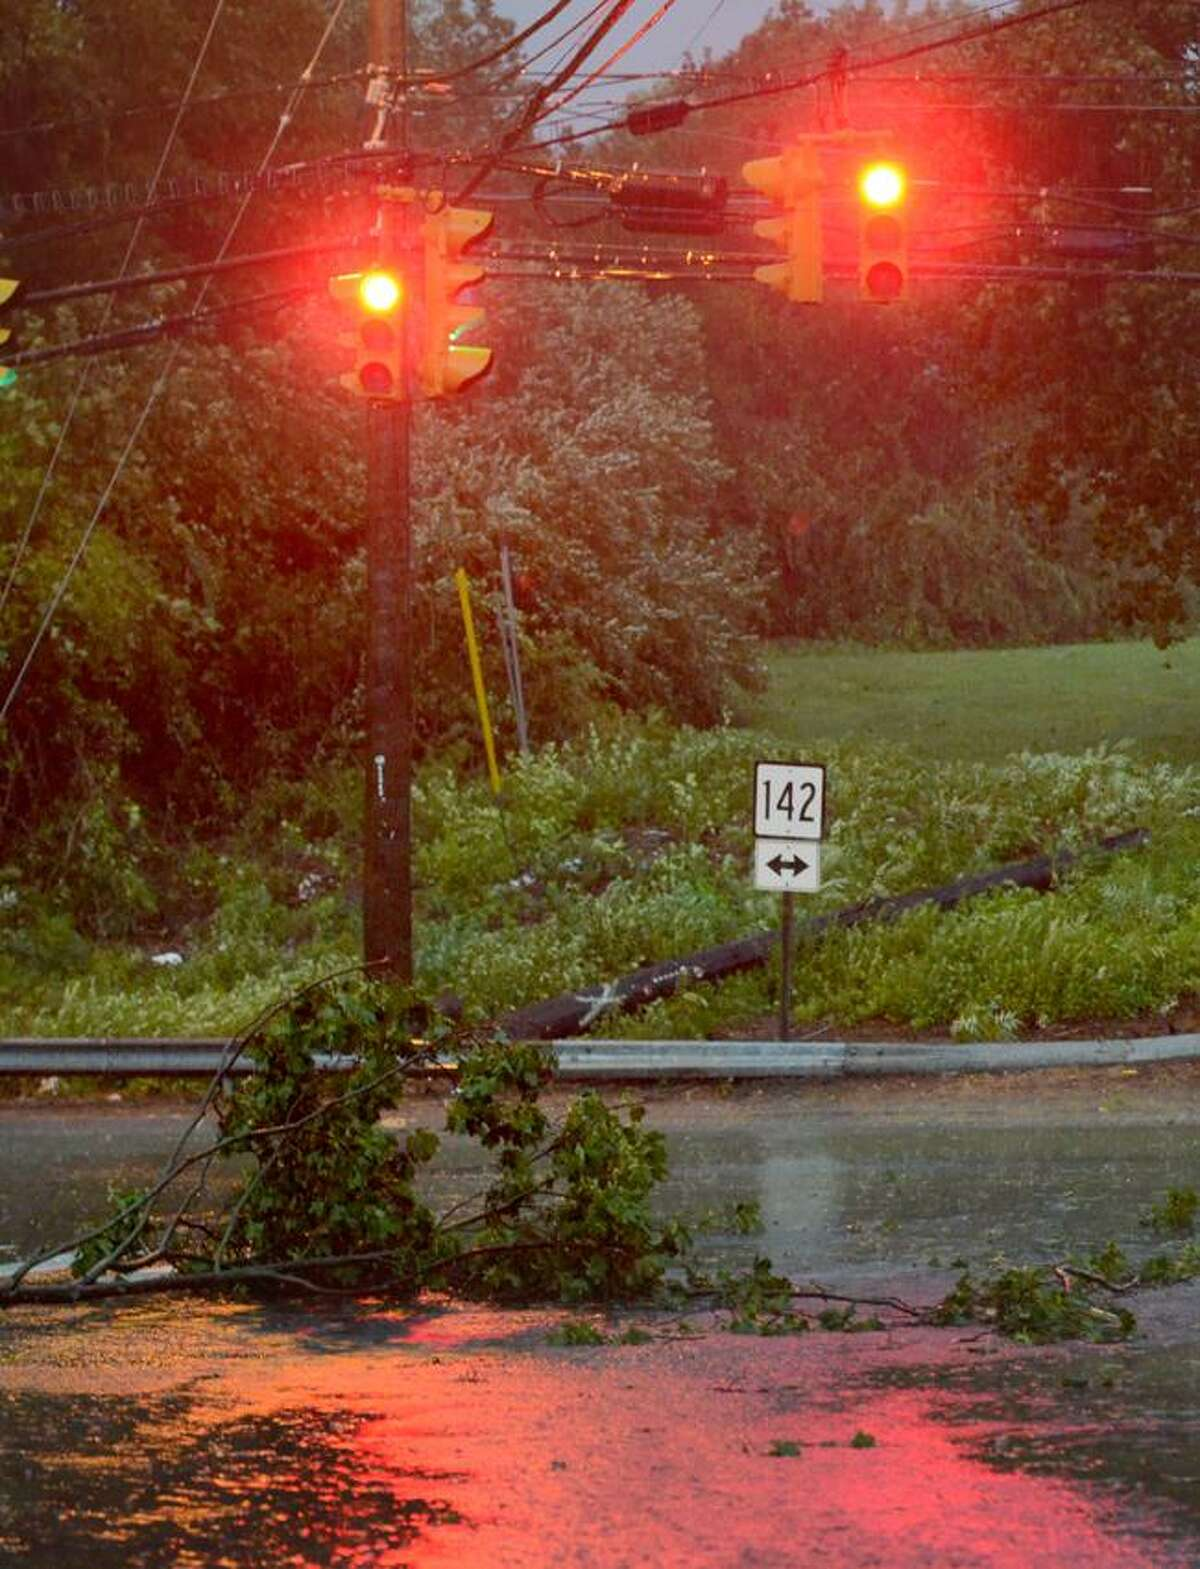 Tree branch down in the road at the intersection of Short Beach Rd and Stannard street in Branford during the early morning hours of Hurricane Irene. VM Williams